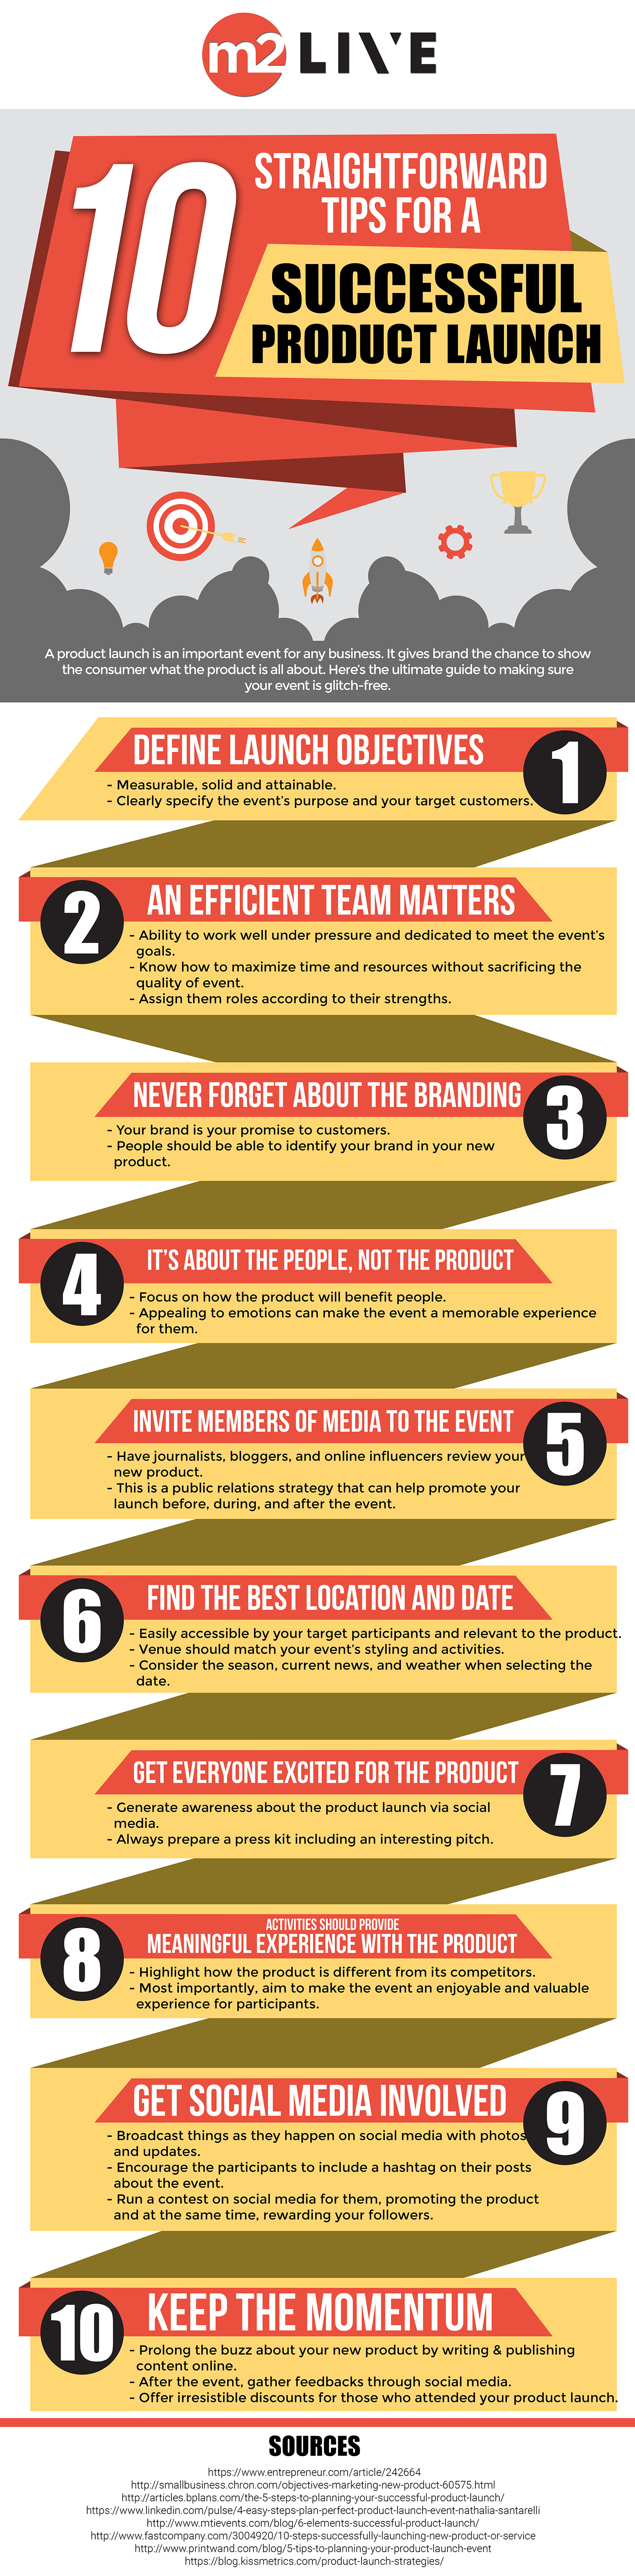 10 Straightforward Tips for A Successful Product Launch